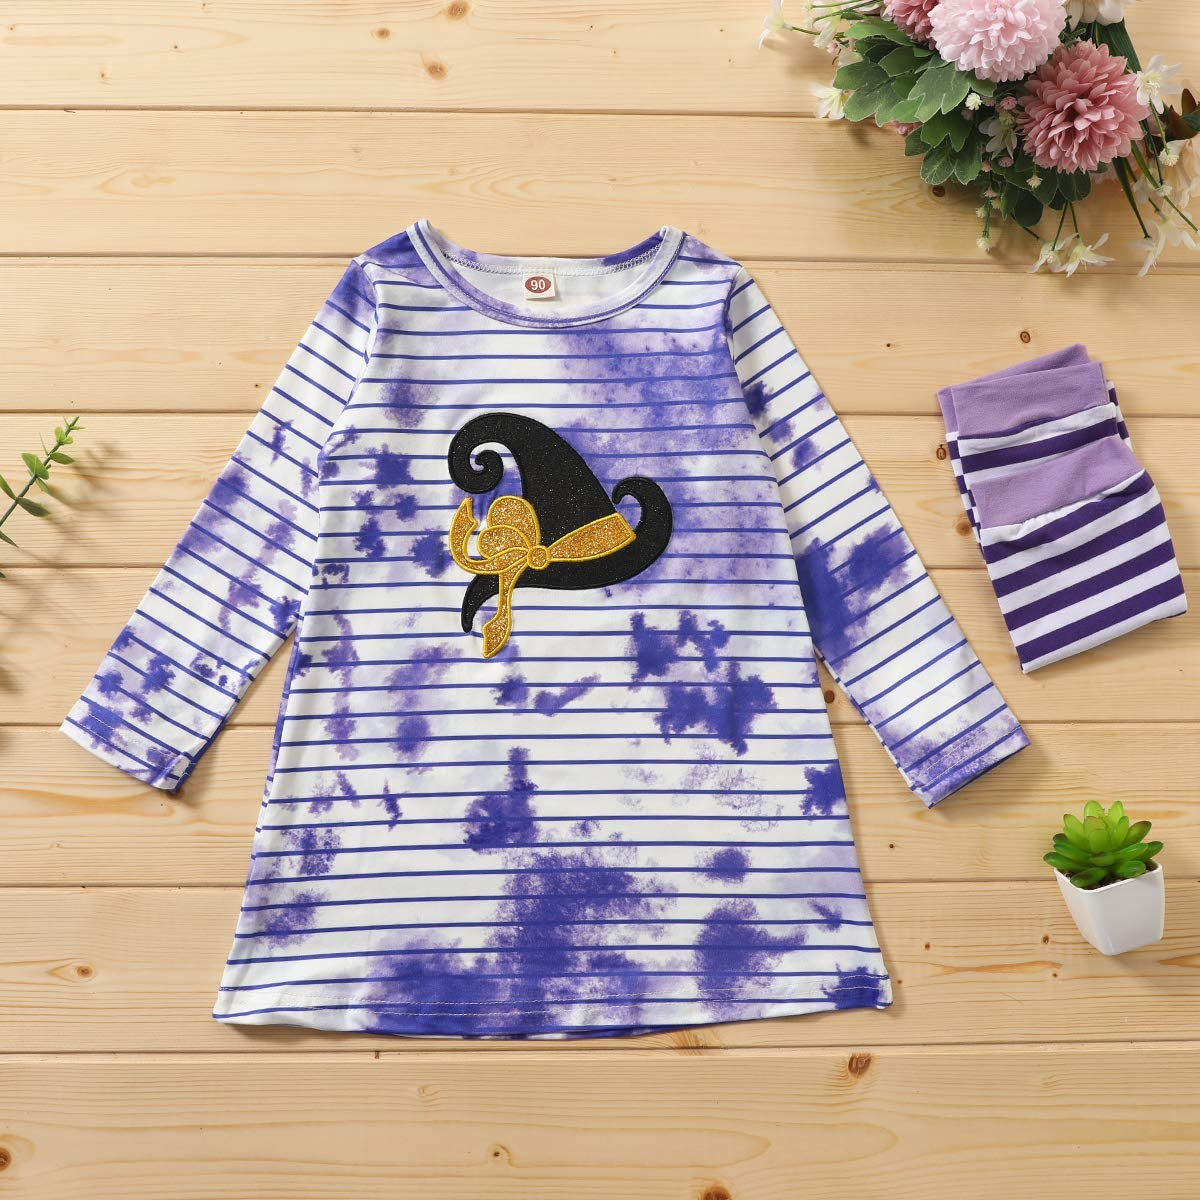 Sasaerucure Toddler Kids Baby Girls Halloween Dress Long Sleeve Tie Dye Striped Tunic Tops Skirt Halloween Clothes Outfits